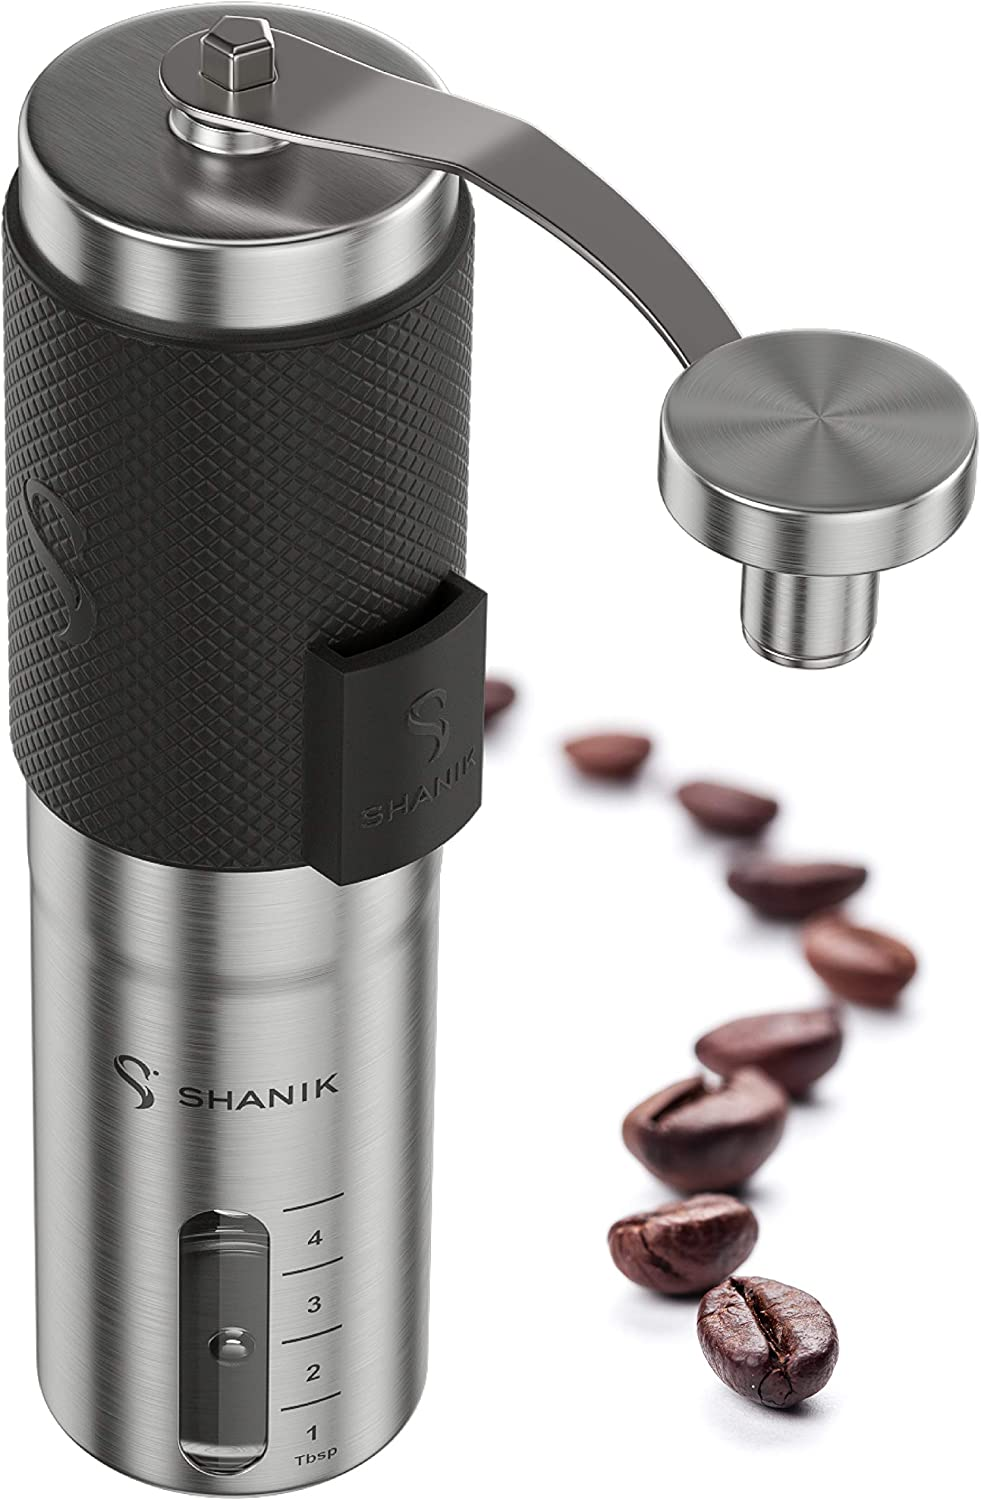 Premium Manual Coffee Grinder